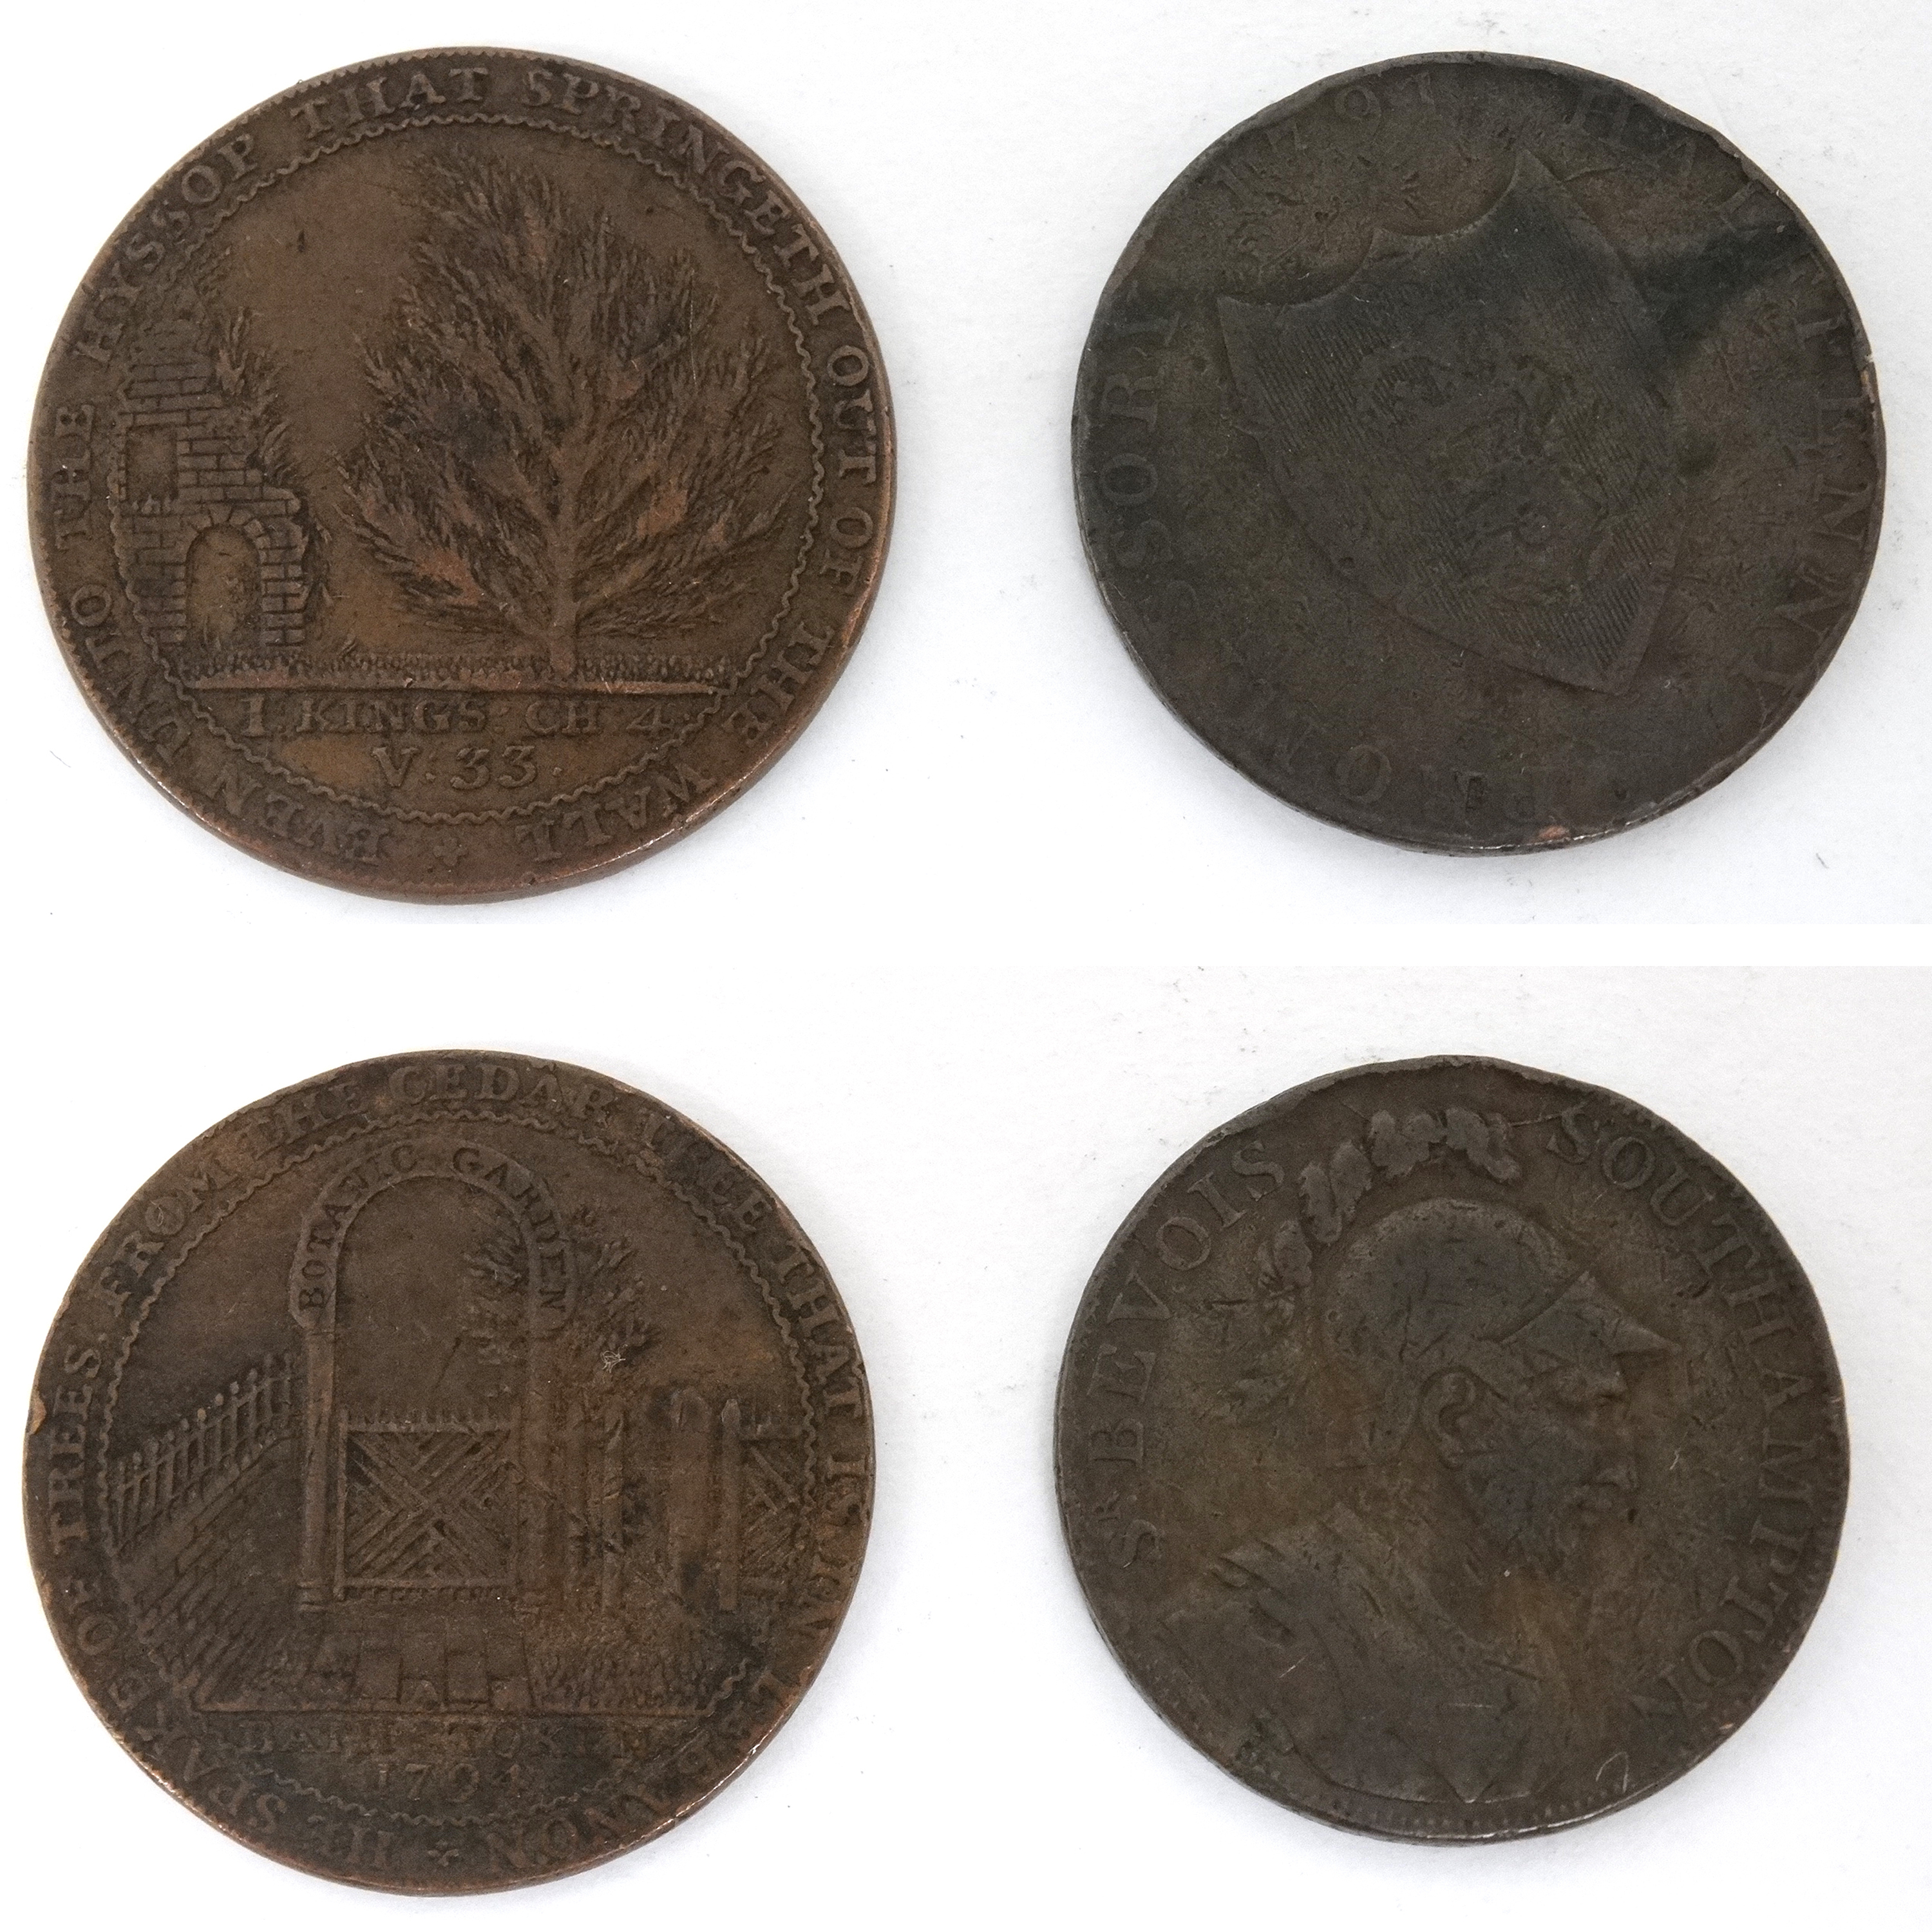 4 18Thc Trade Tokens Sold For £650 S